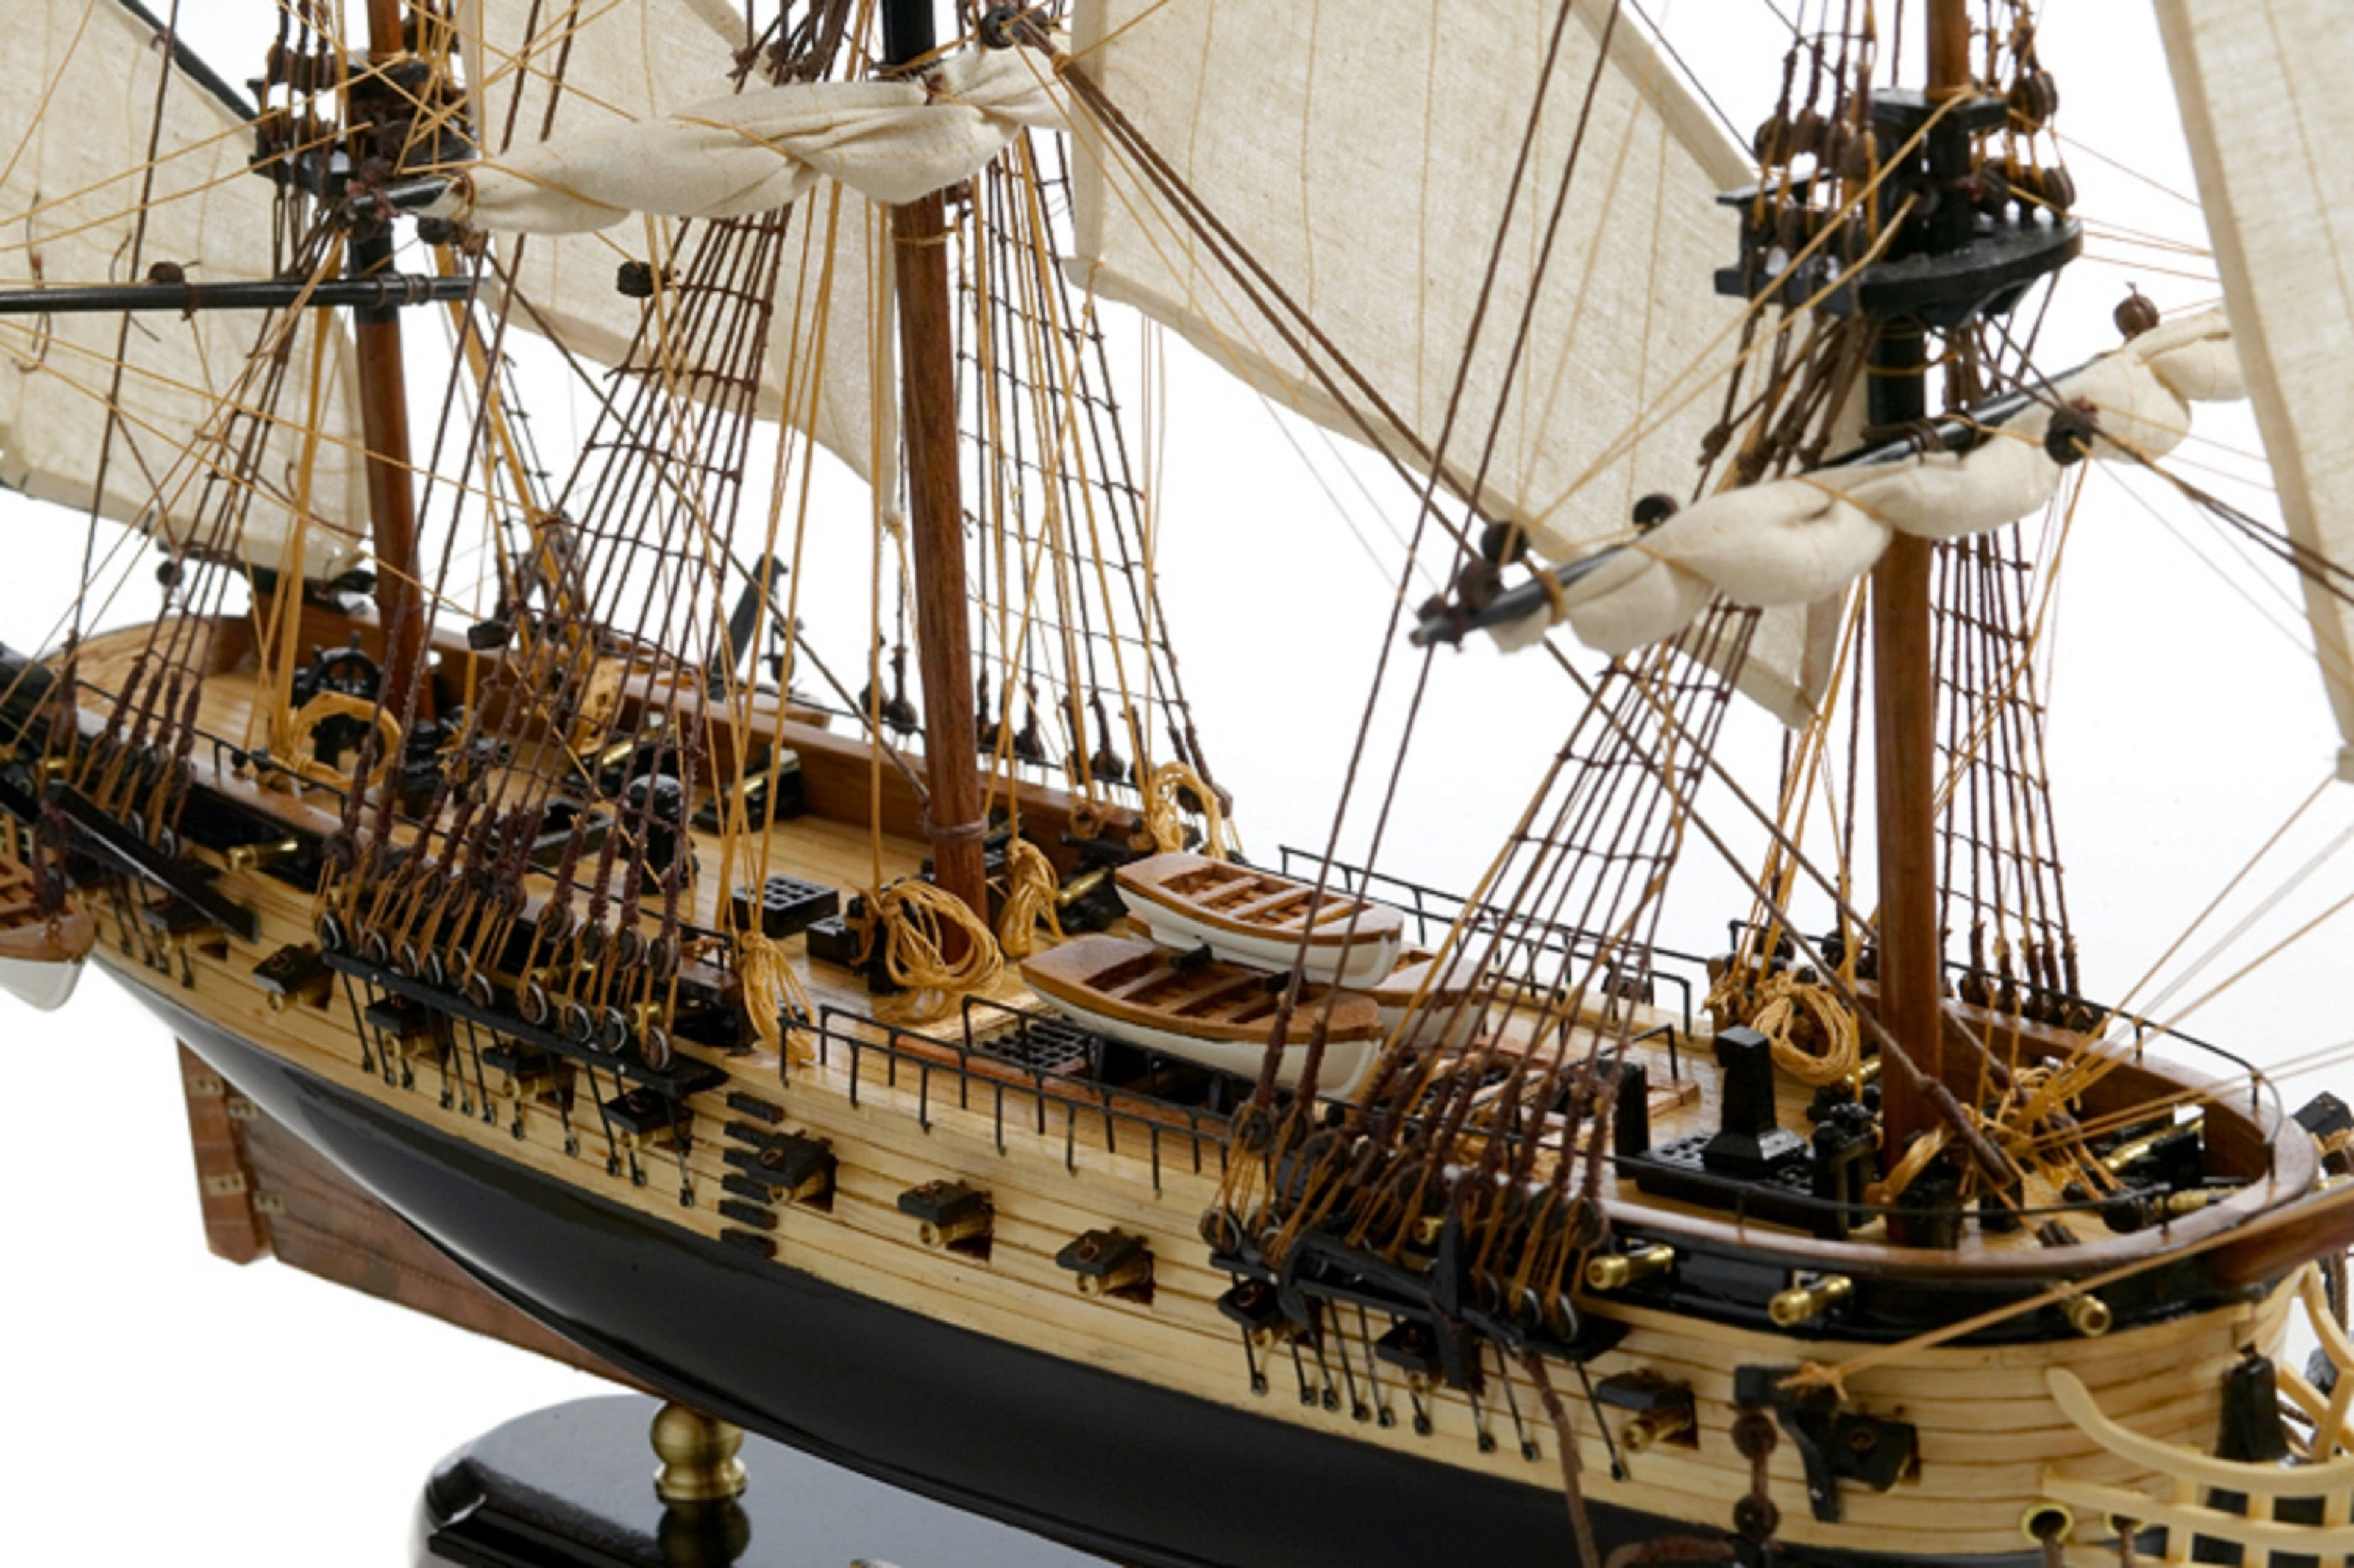 488-8349-HMS-Surprise-Model-Ship-Superior-Range